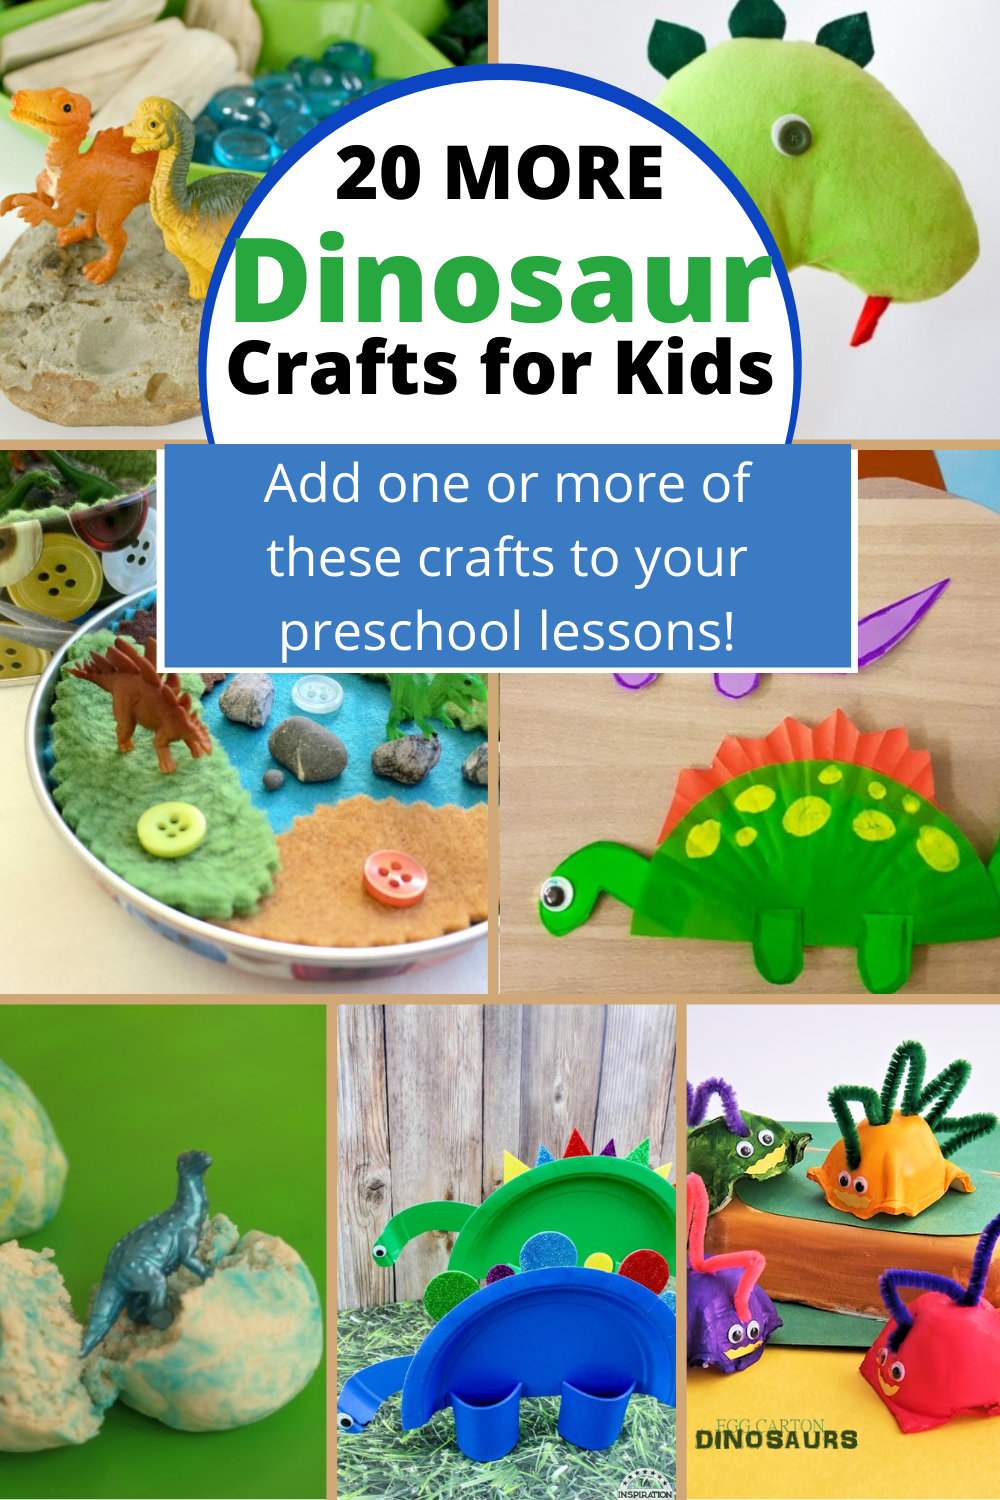 25 Ideas for Easy Dinosaur Crafts for Preschoolers in 2020 ...